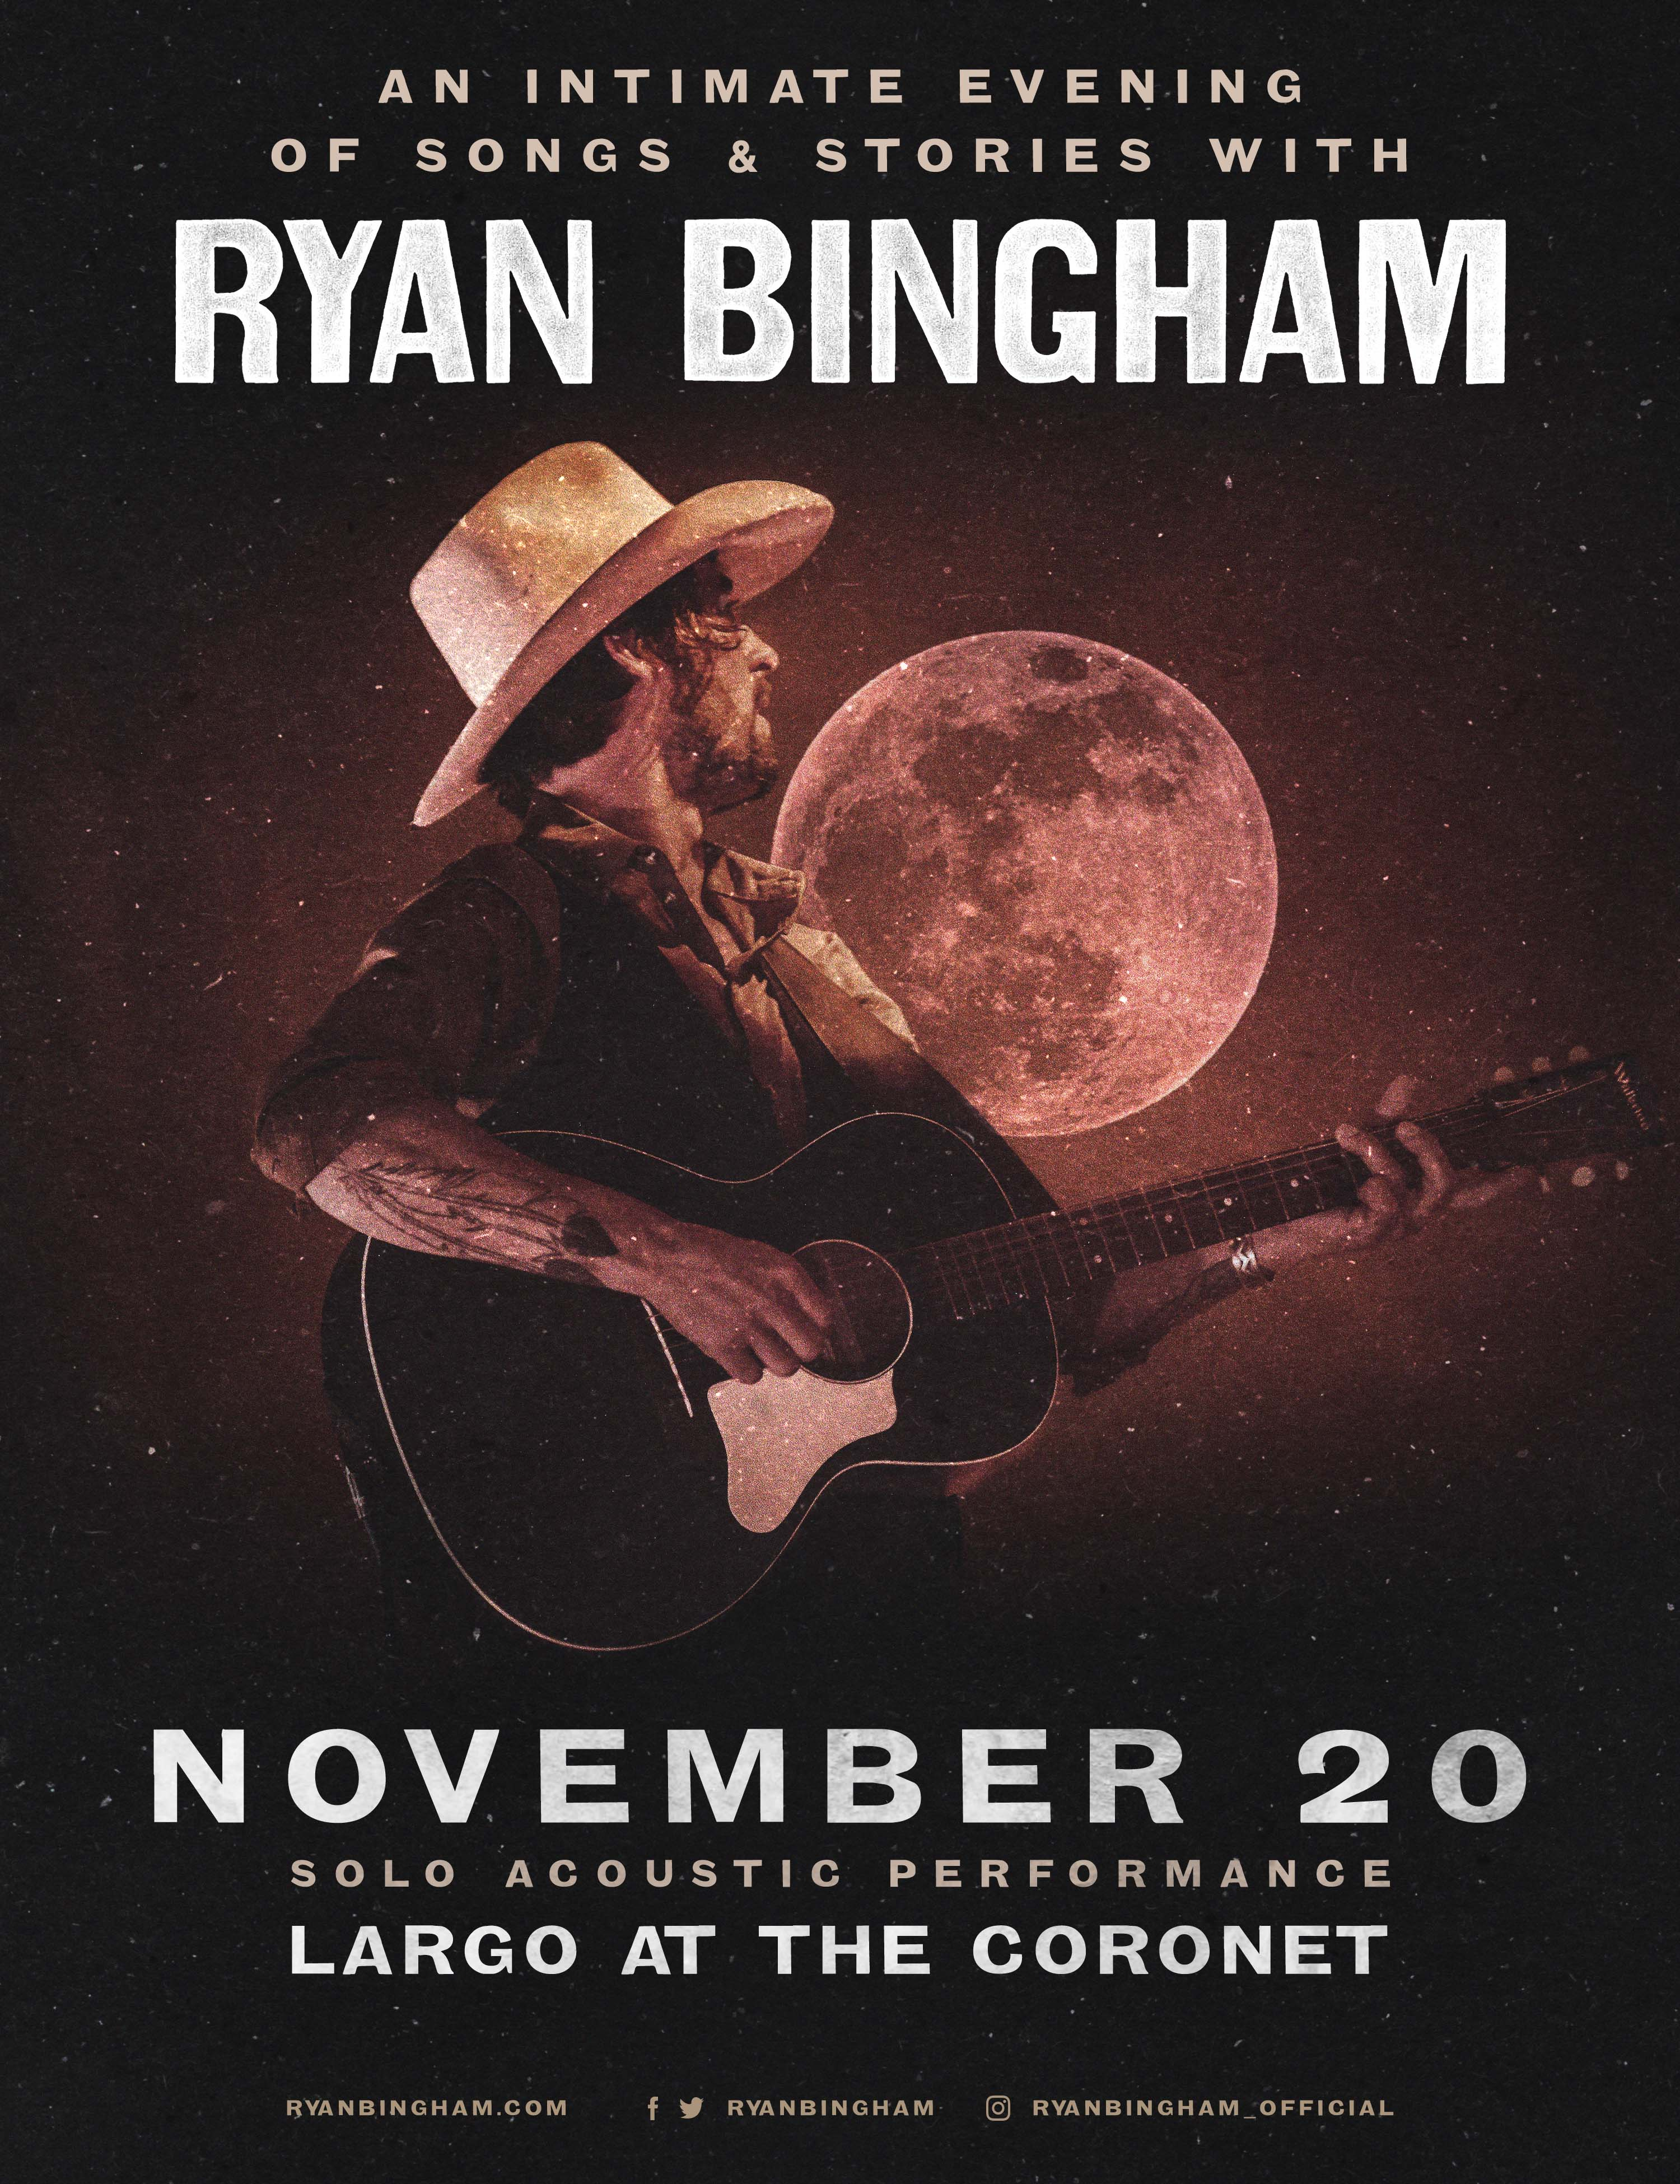 An Intimate Evening of Songs & Stories with Ryan Bingham